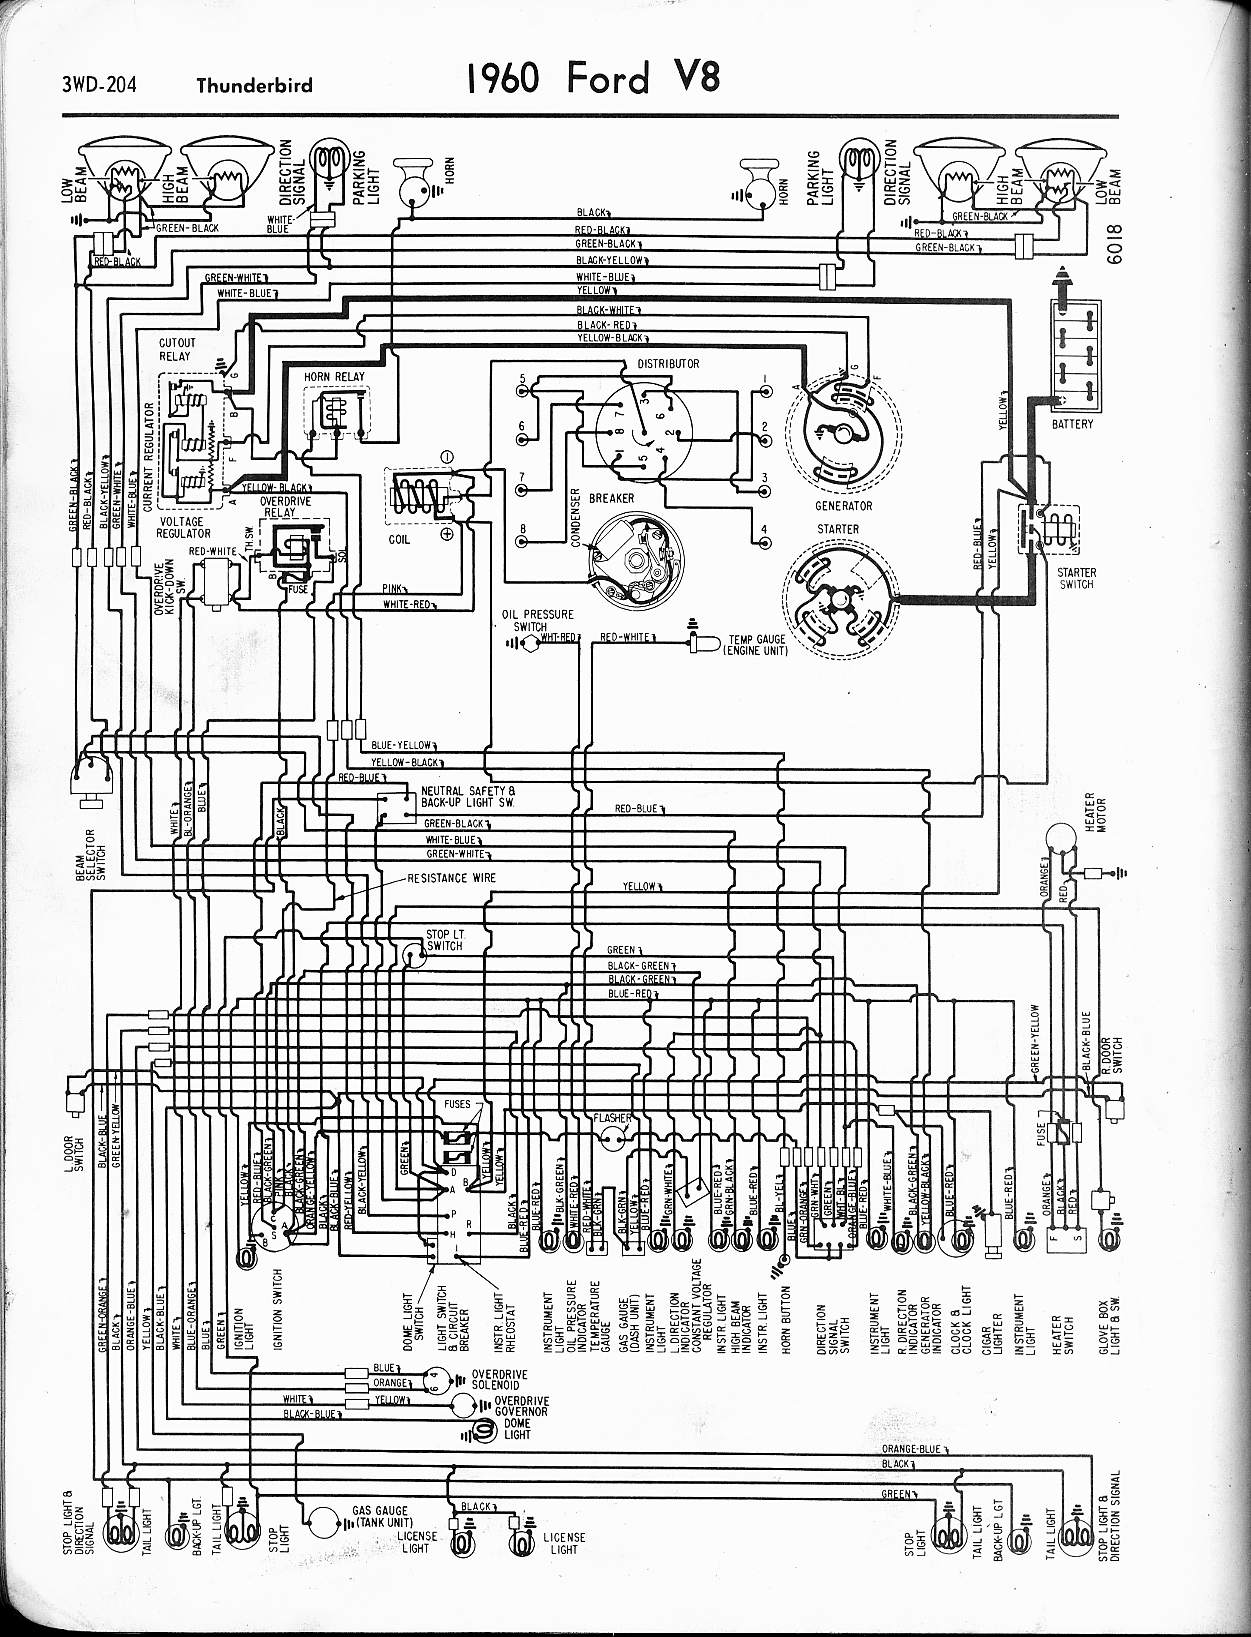 Electric Range Wiring Diagram 1956 Smart Diagrams Whirlpool Schematic 57 65 Ford Rh Oldcarmanualproject Com Oven Manual